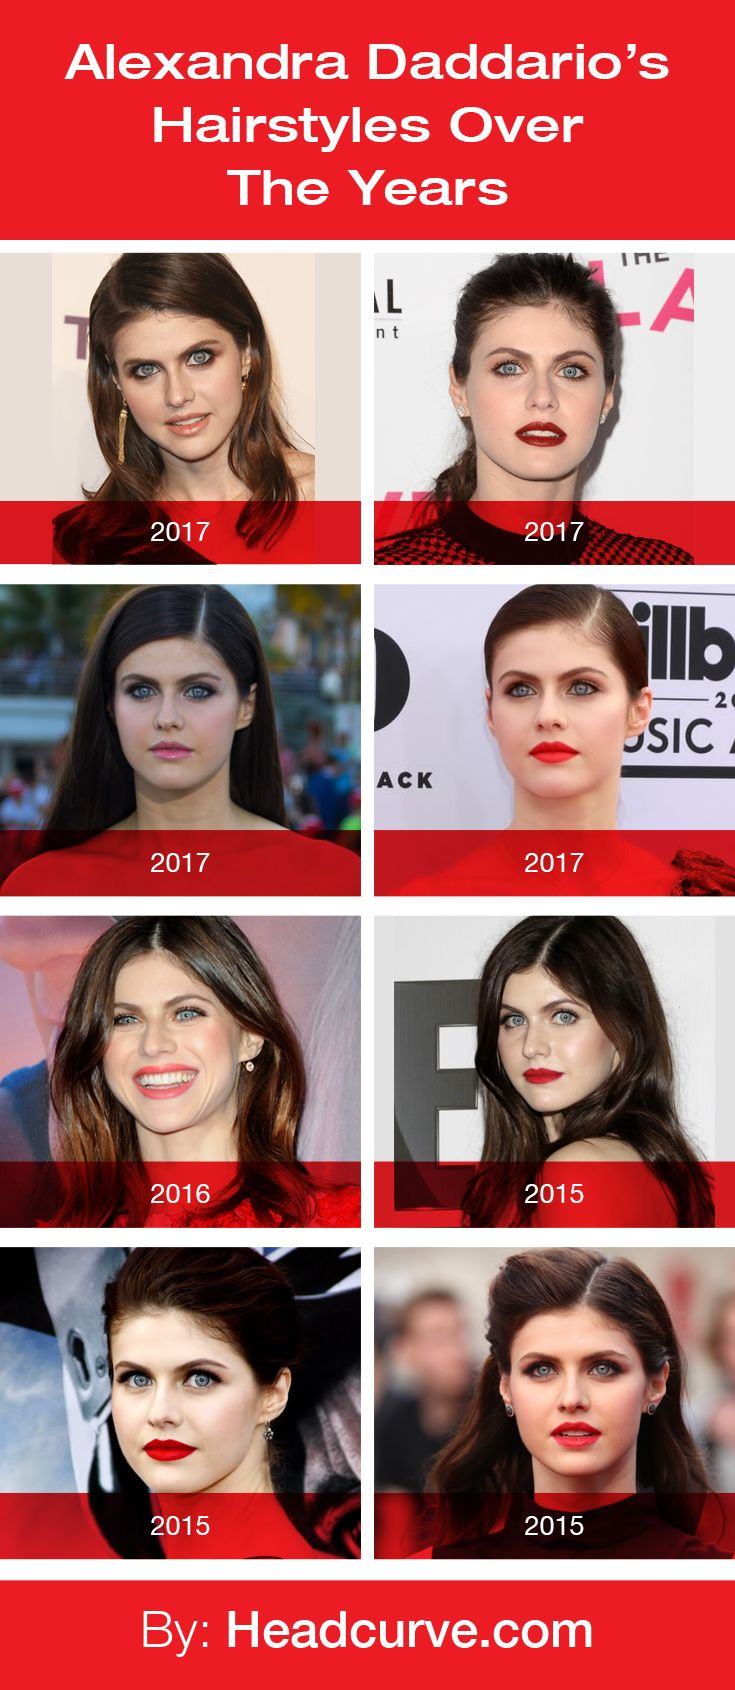 Alexandra Daddario's Hairstyles Over the Years